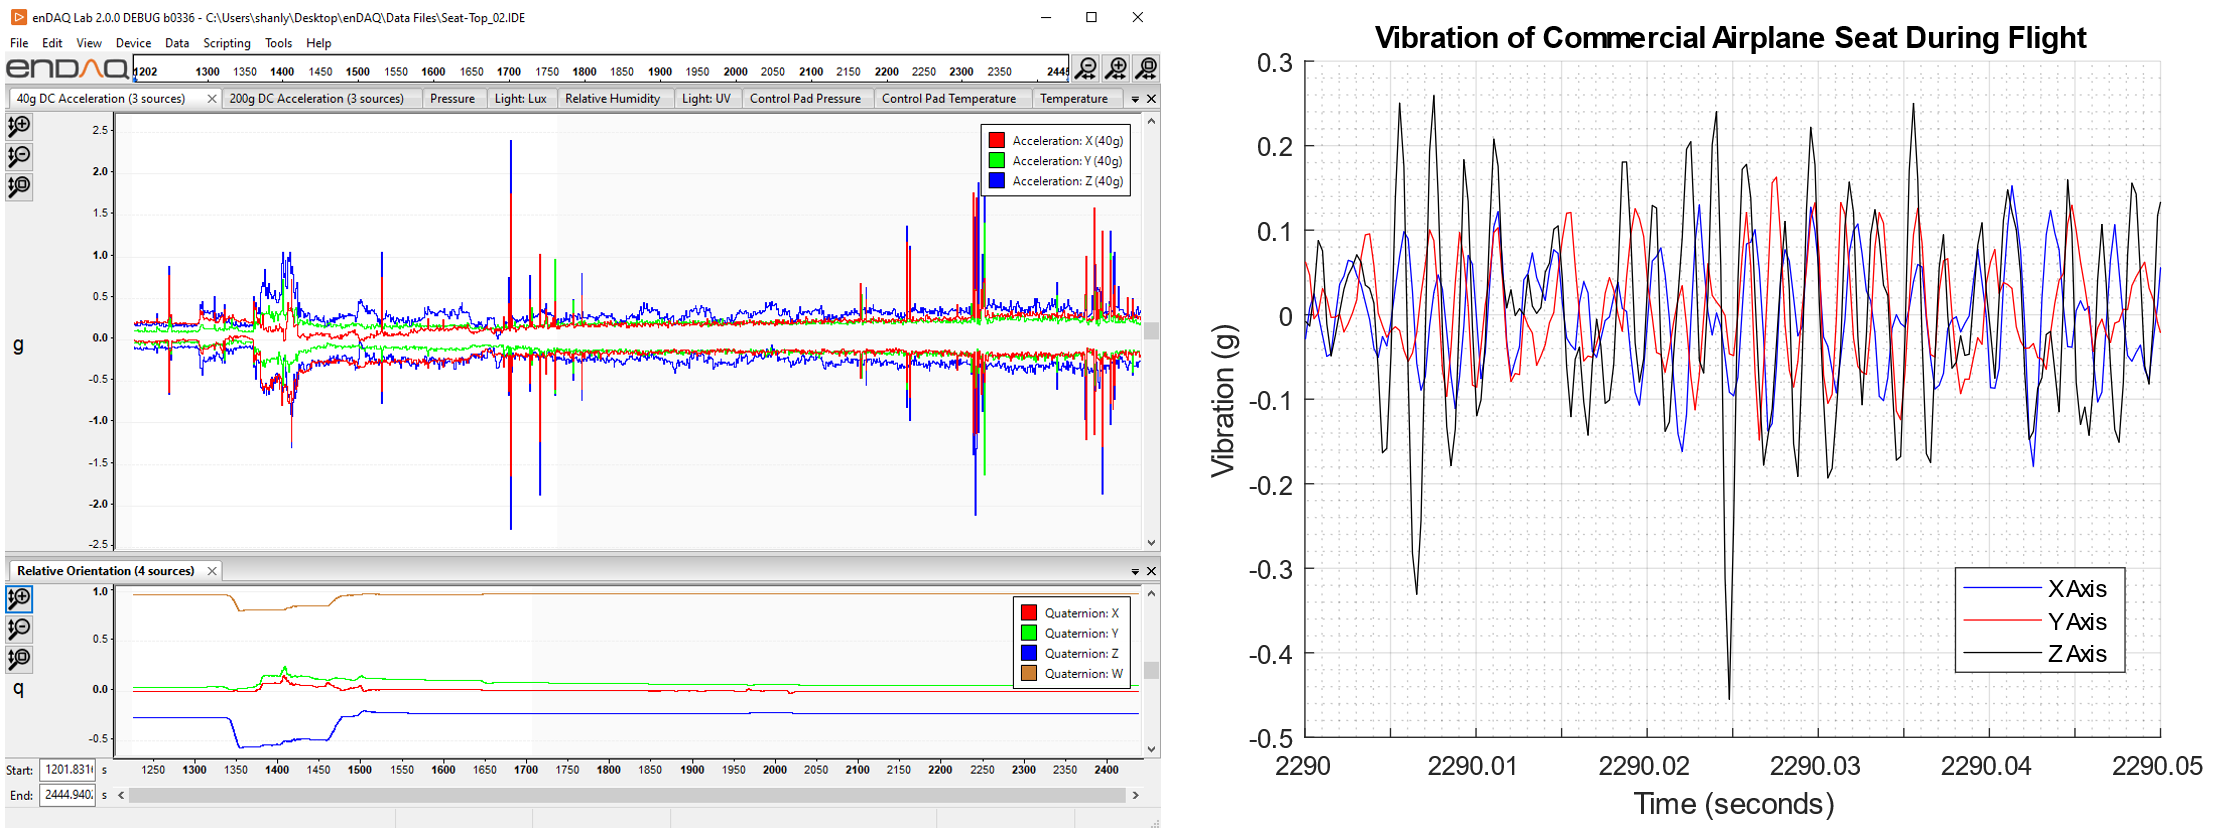 Vibration data from an Airbus A320